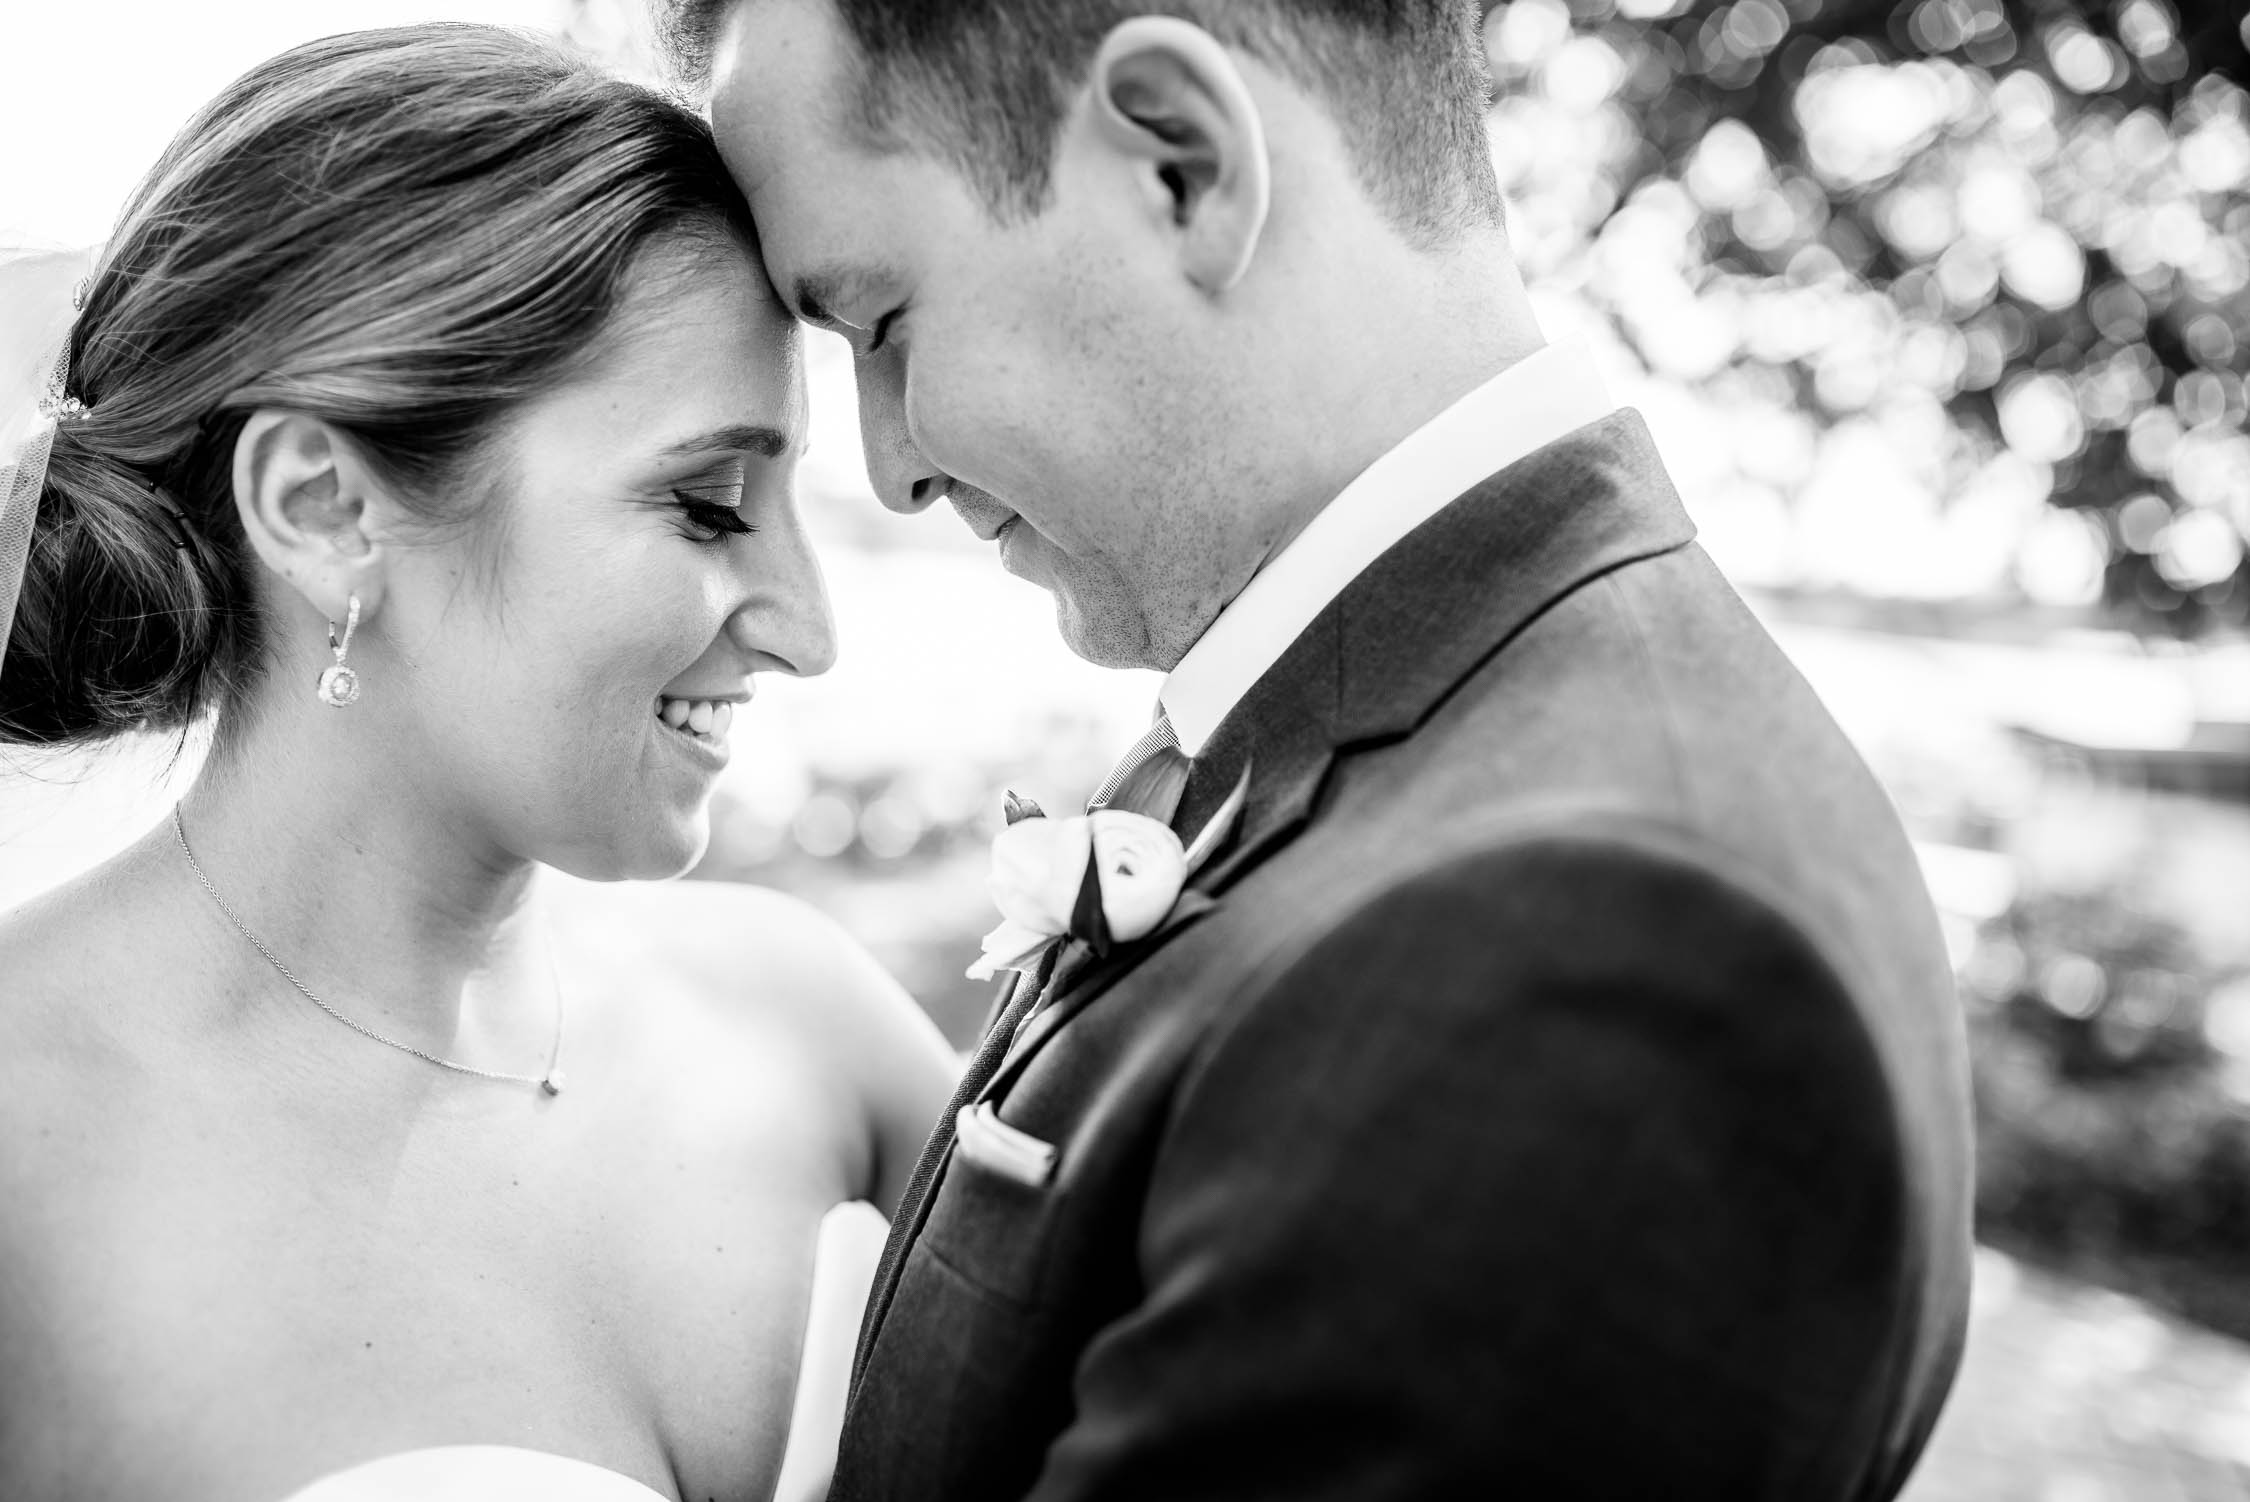 Moment with the bride and groom on their wedding day at Independence Grove in Libertyville.